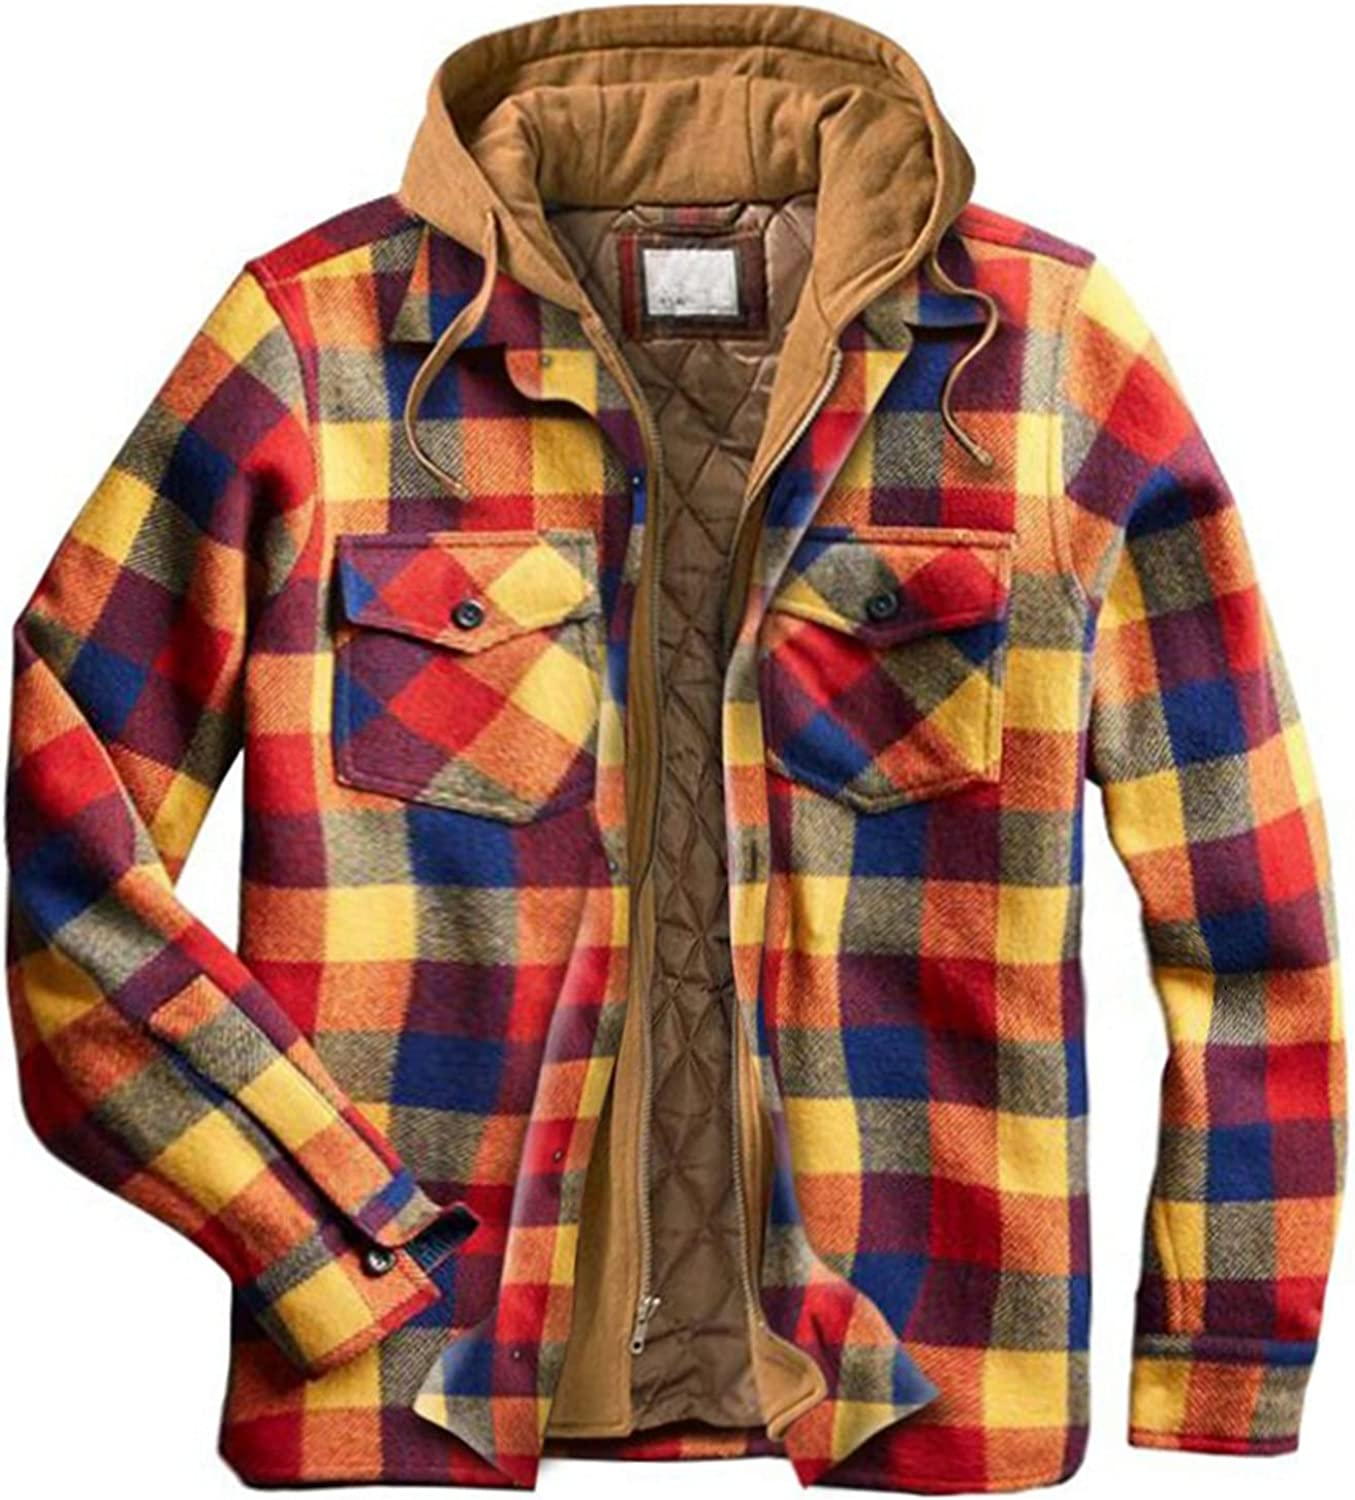 Men's Plaid Stamp Jackets,Long Sleeved Warm Lined Plush Thicken Shirt V135